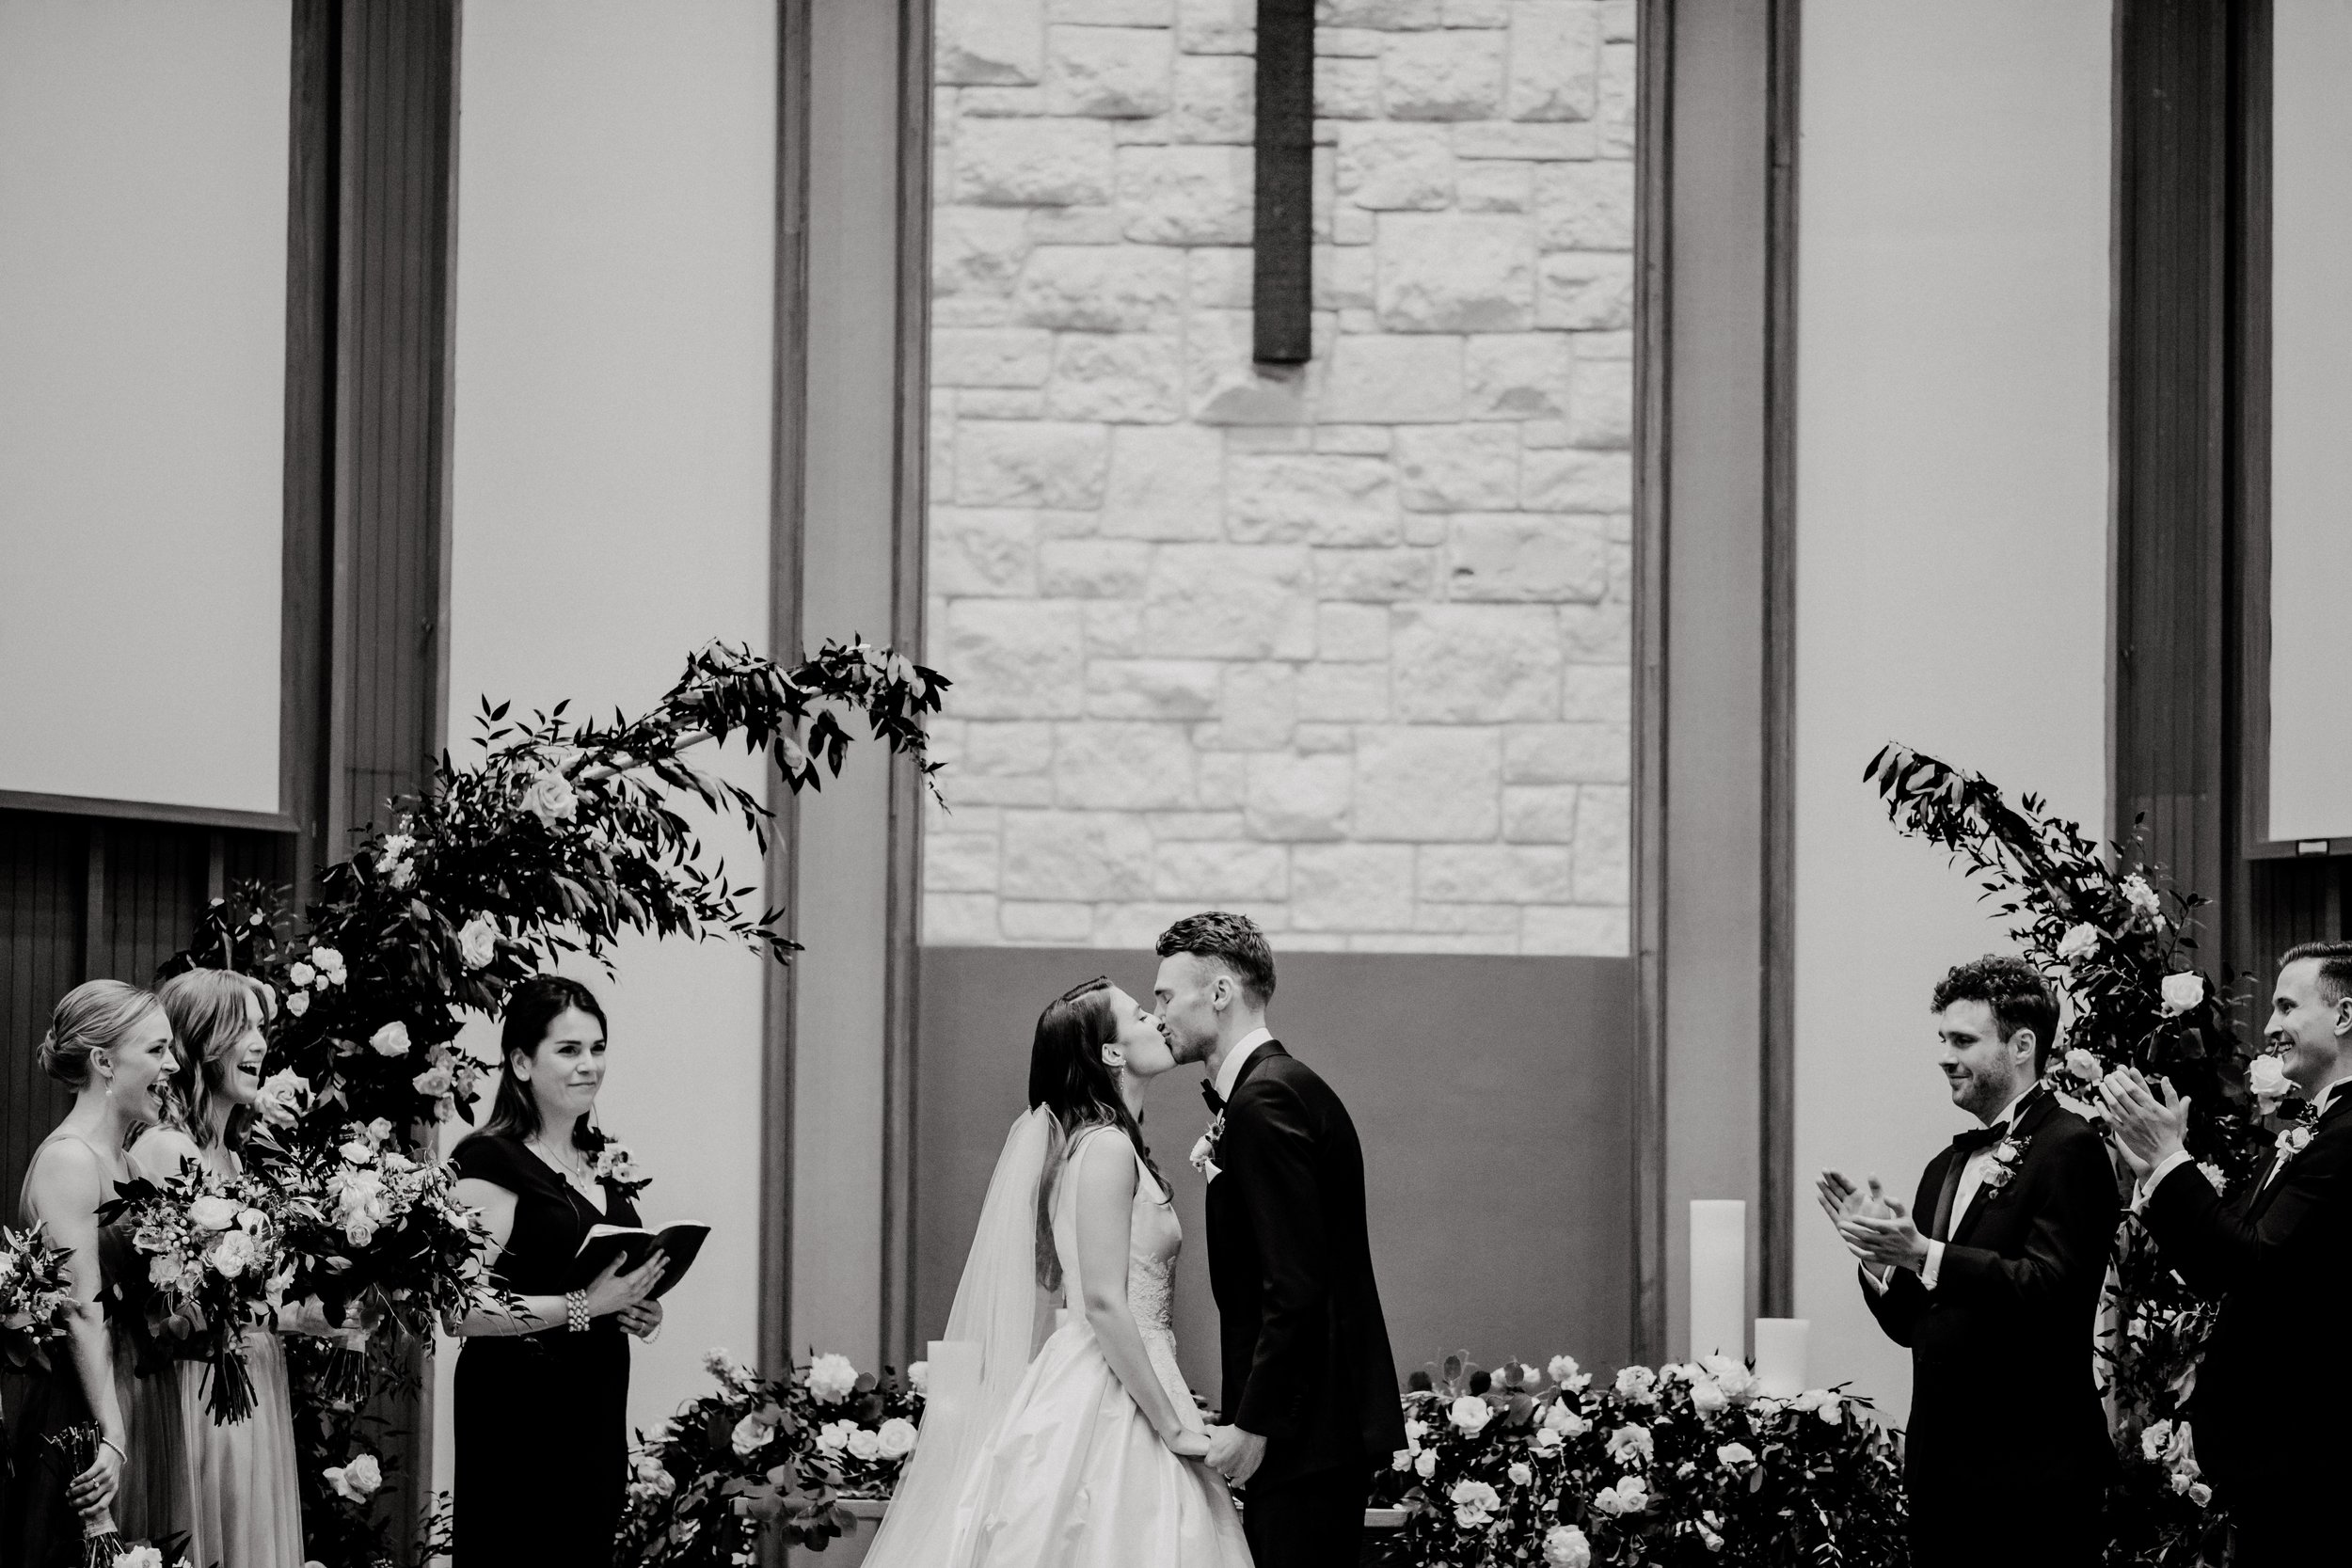 st-anthony-hotel-wedding-photography-10082san-antonio.JPG